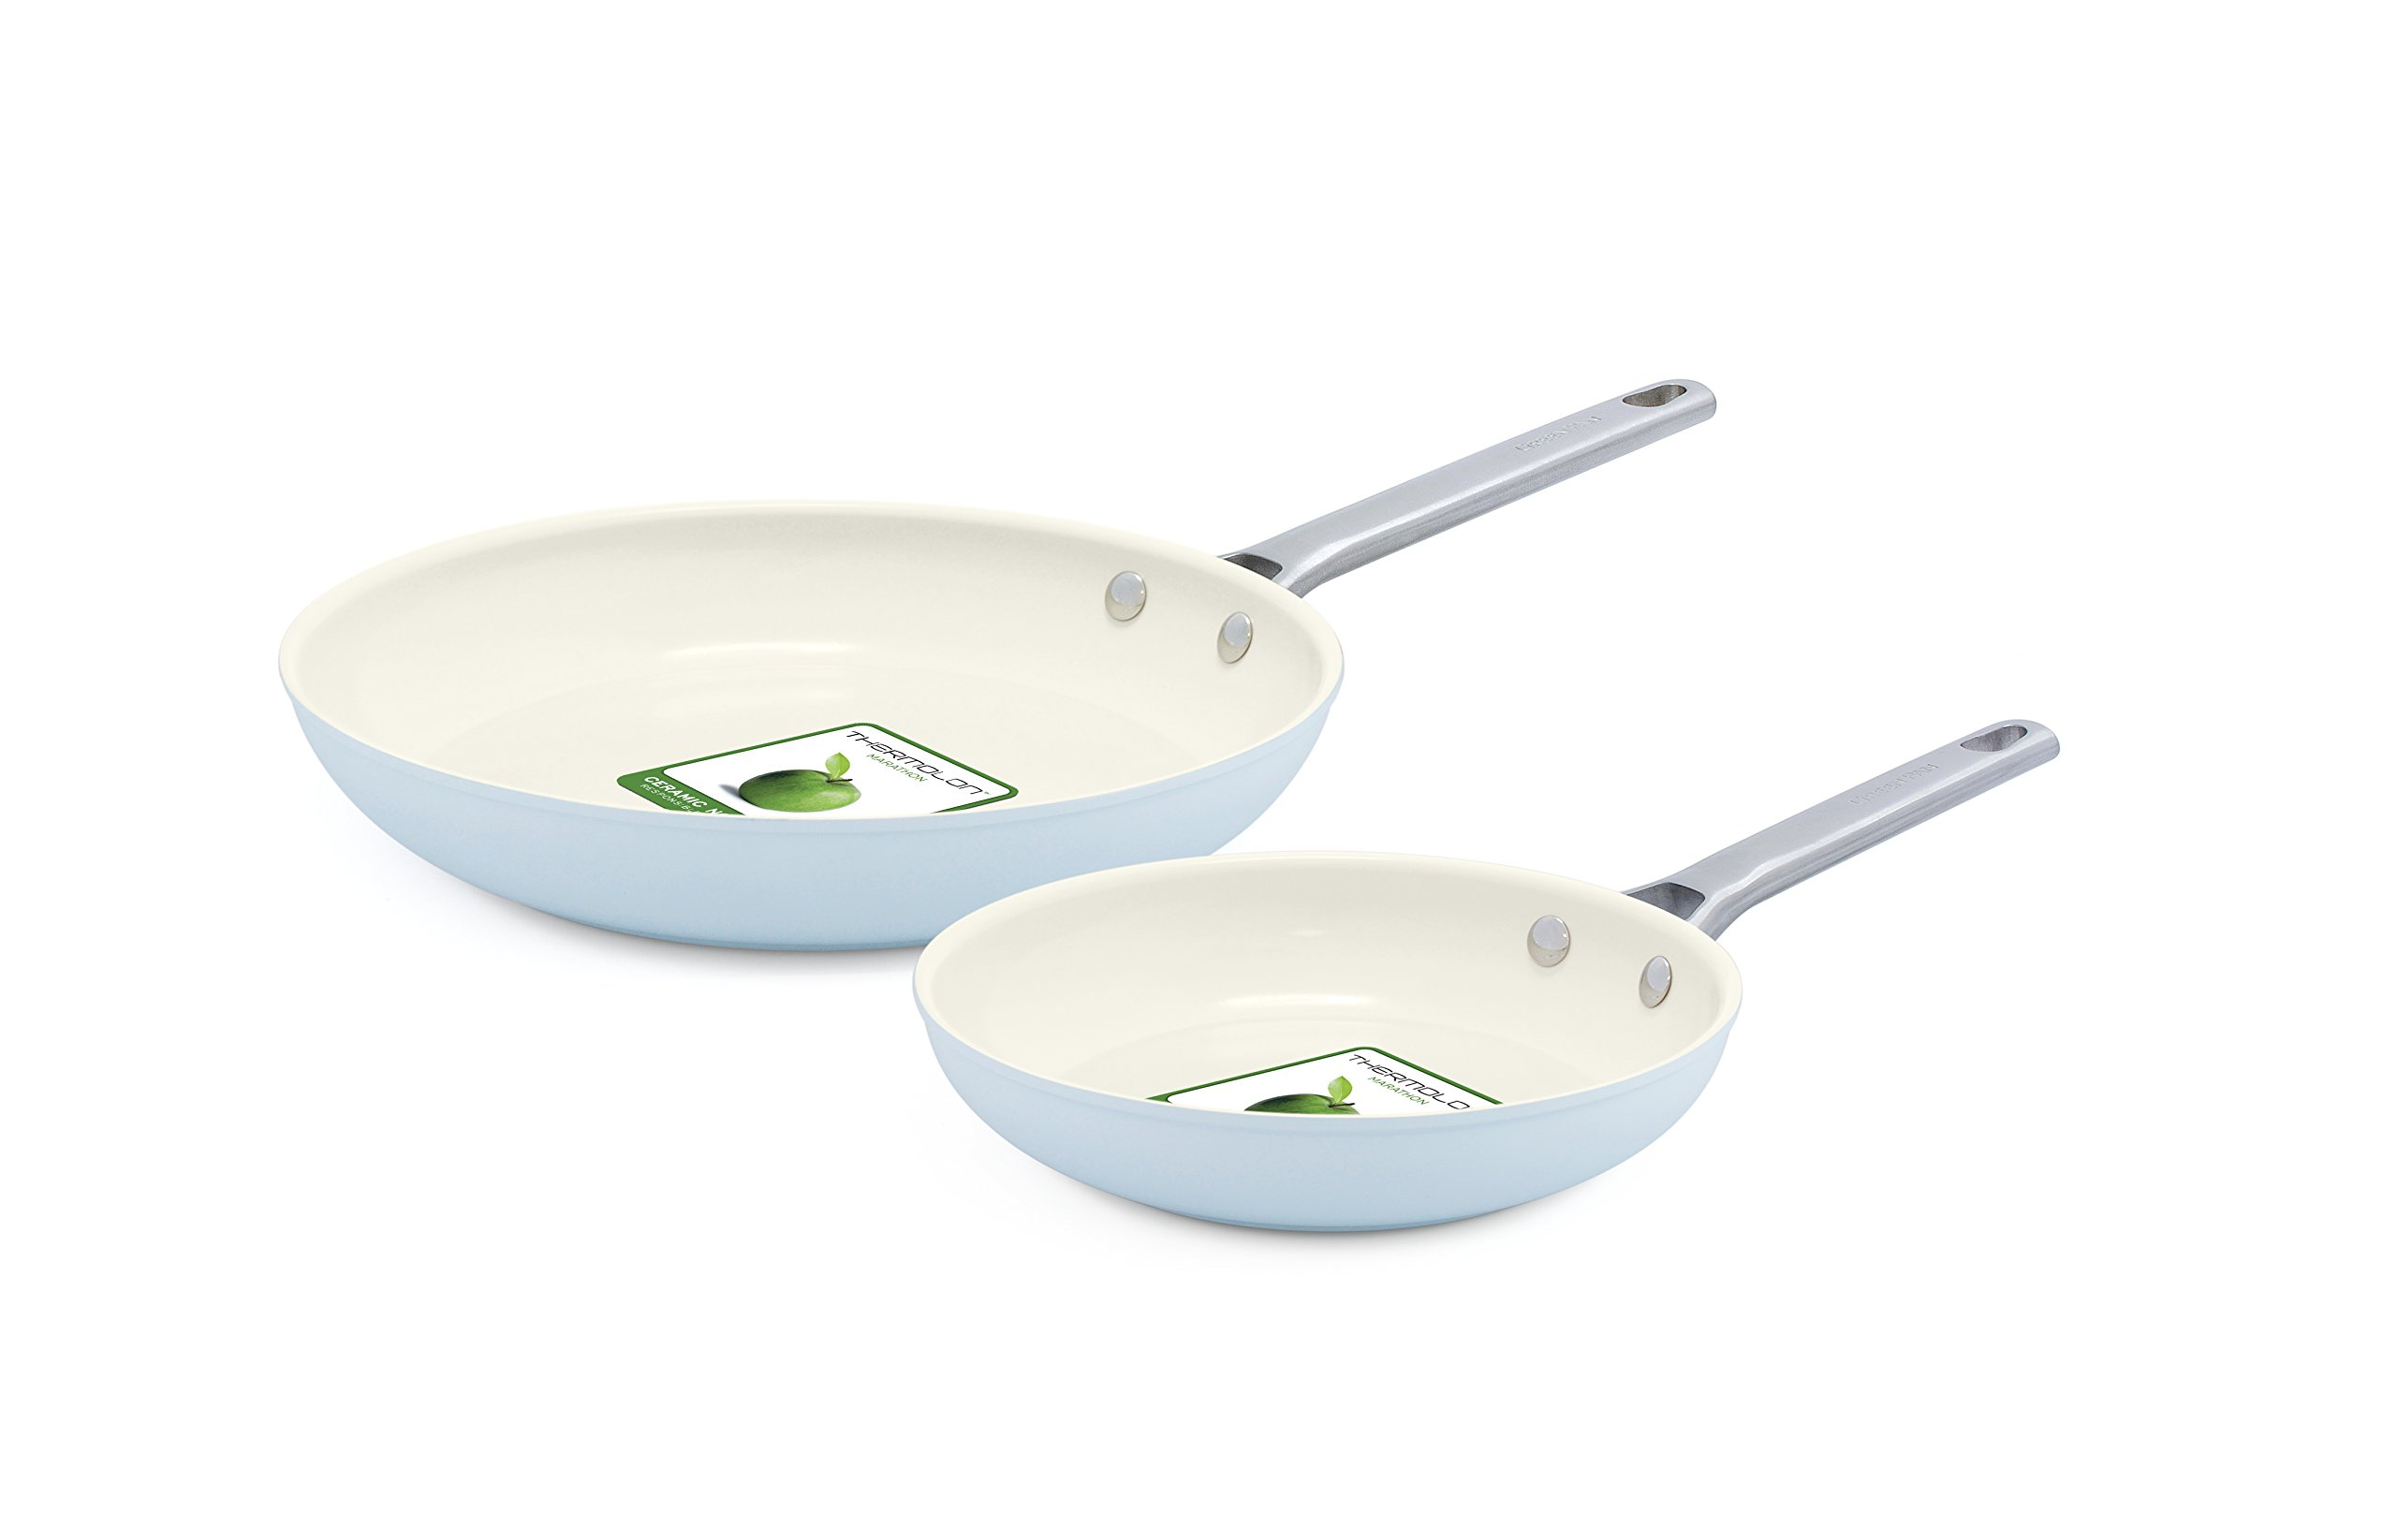 GreenPan Padova 8'' and 10'' Ceramic Non-Stick Open Frypan Set, Light Blue